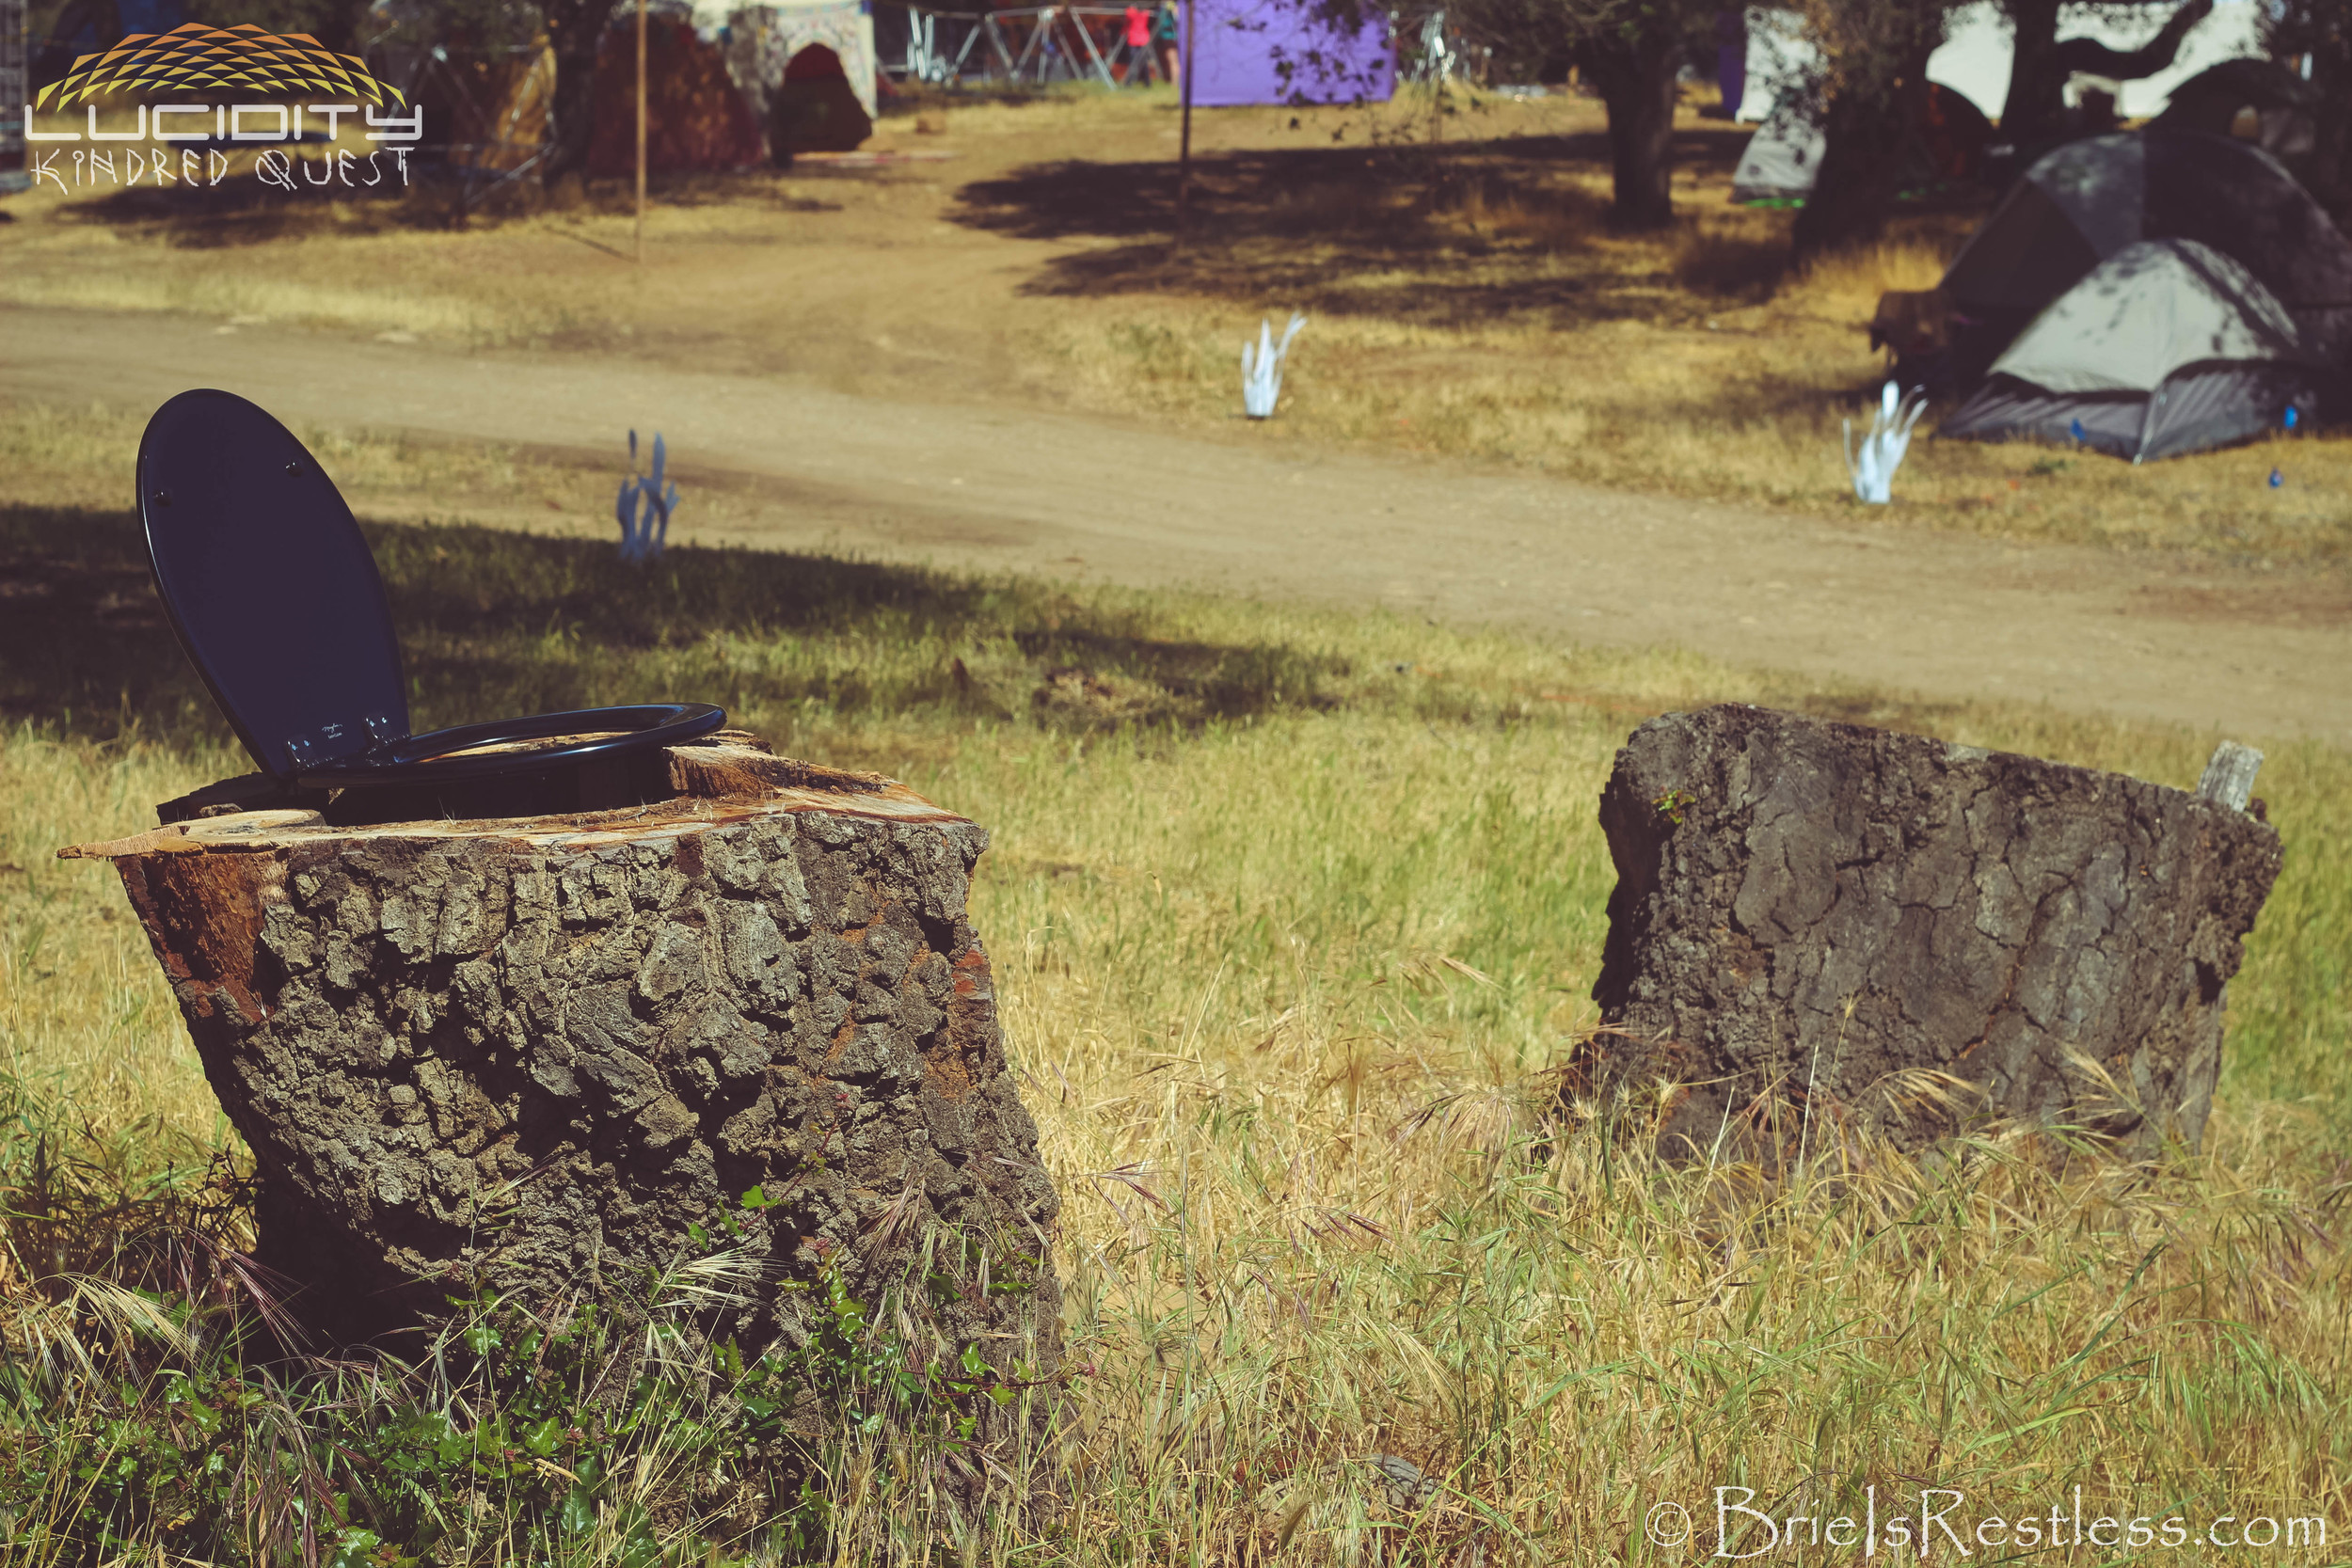 Toilet Seats and Tree Trunks and Grass - Luciditiy - Kindred Quest - Build - April 2015 (1 of 1)-1.JPG